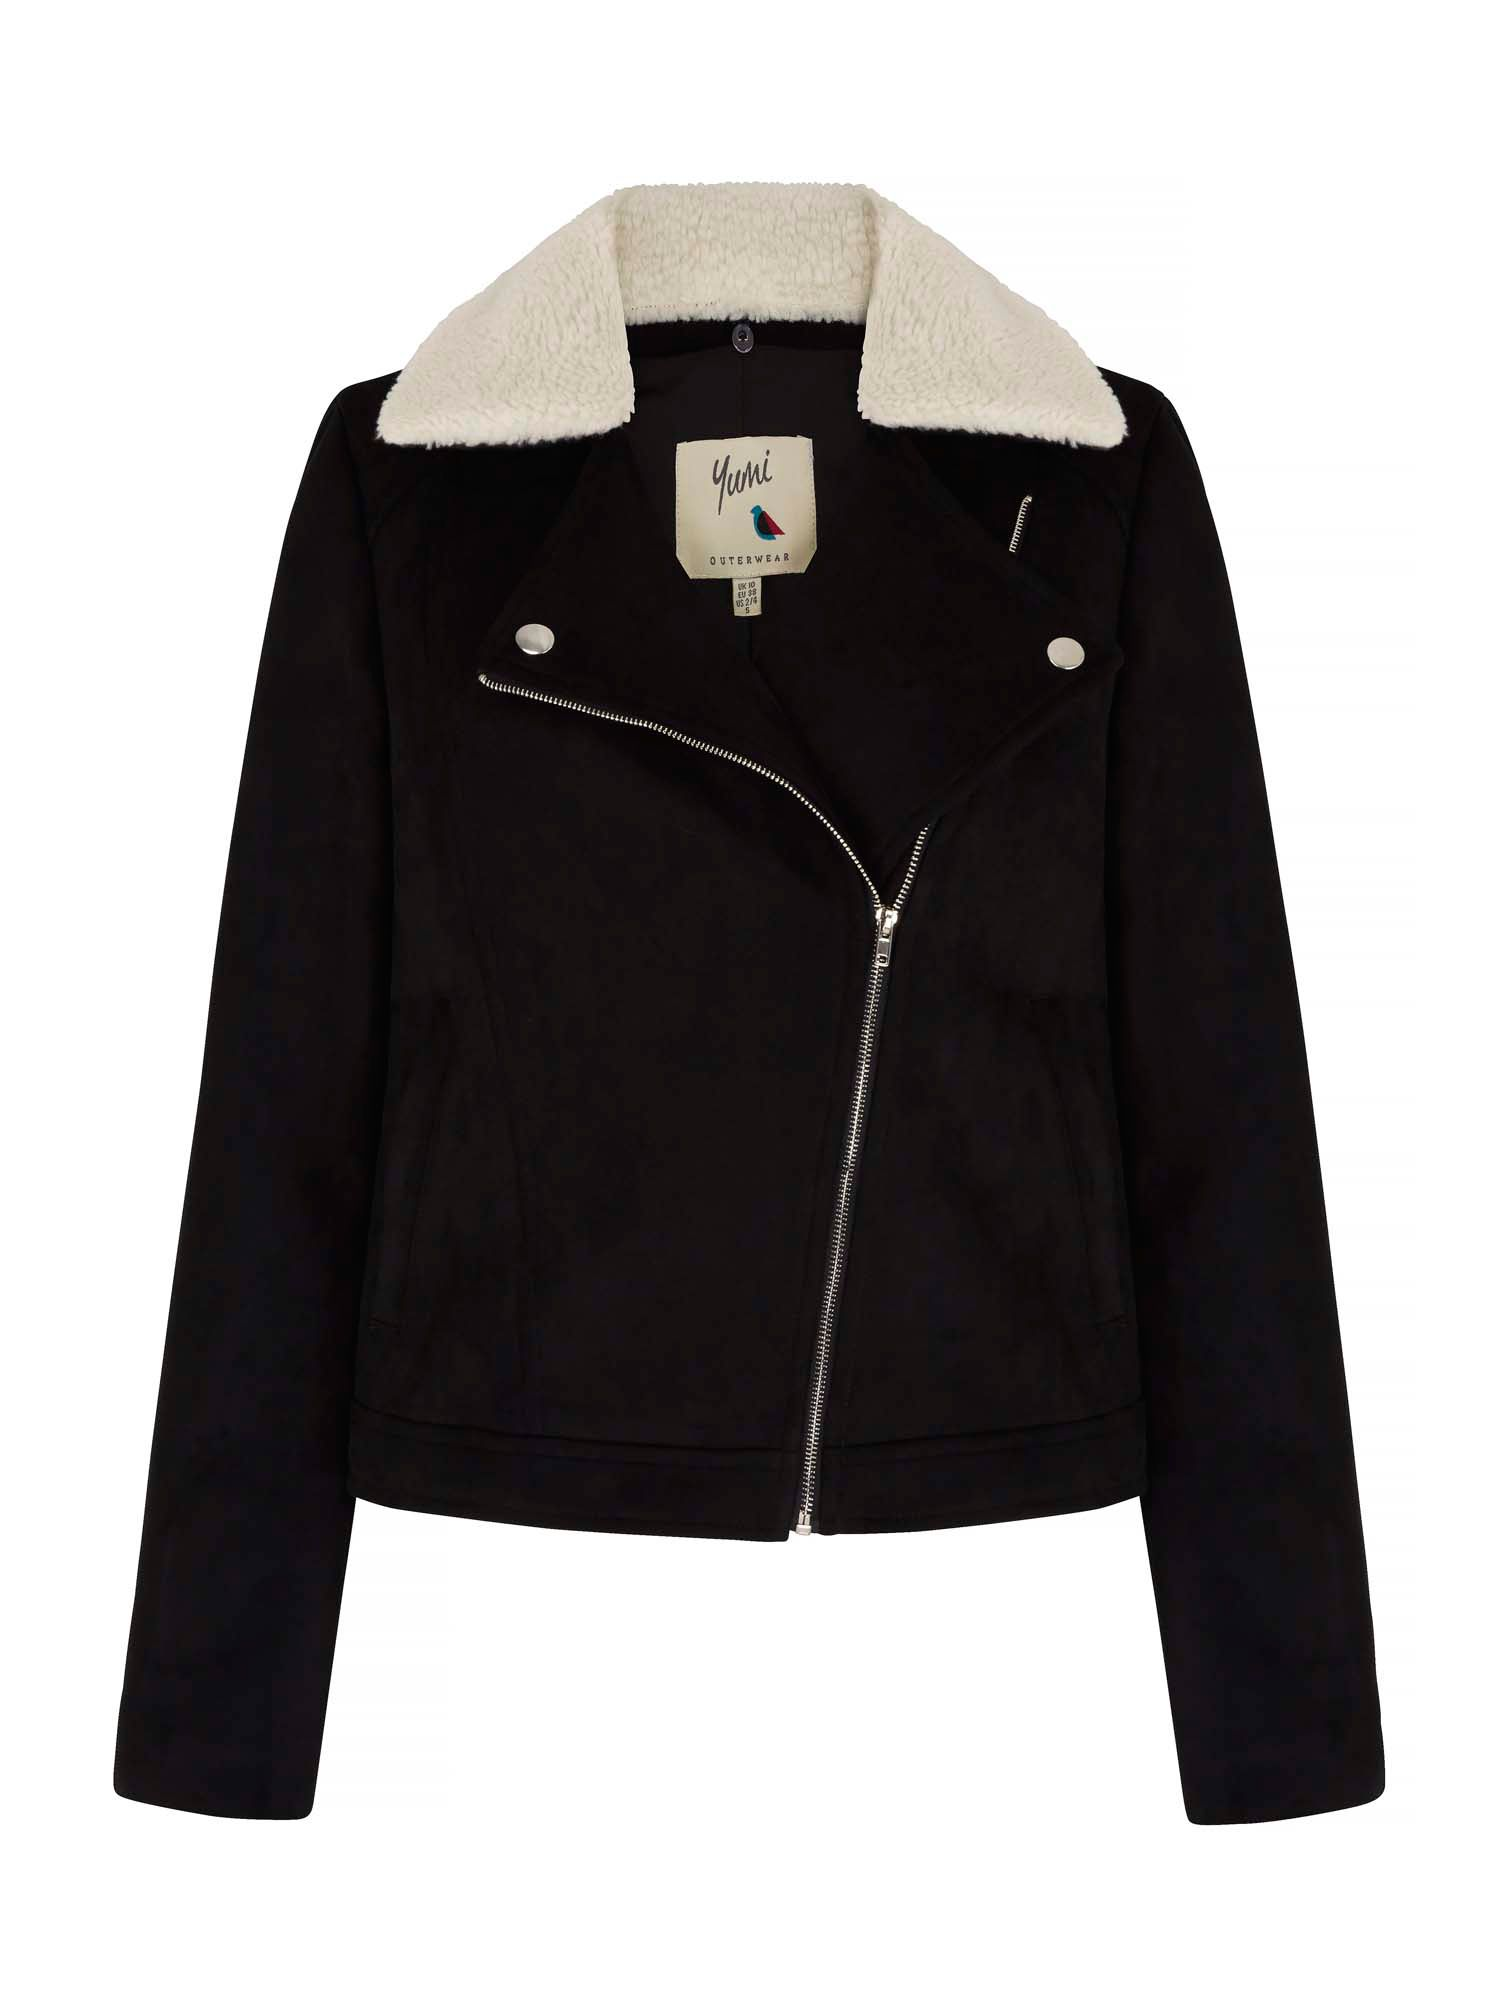 Yumi Suedette Jacket With Fleece Collar, Black